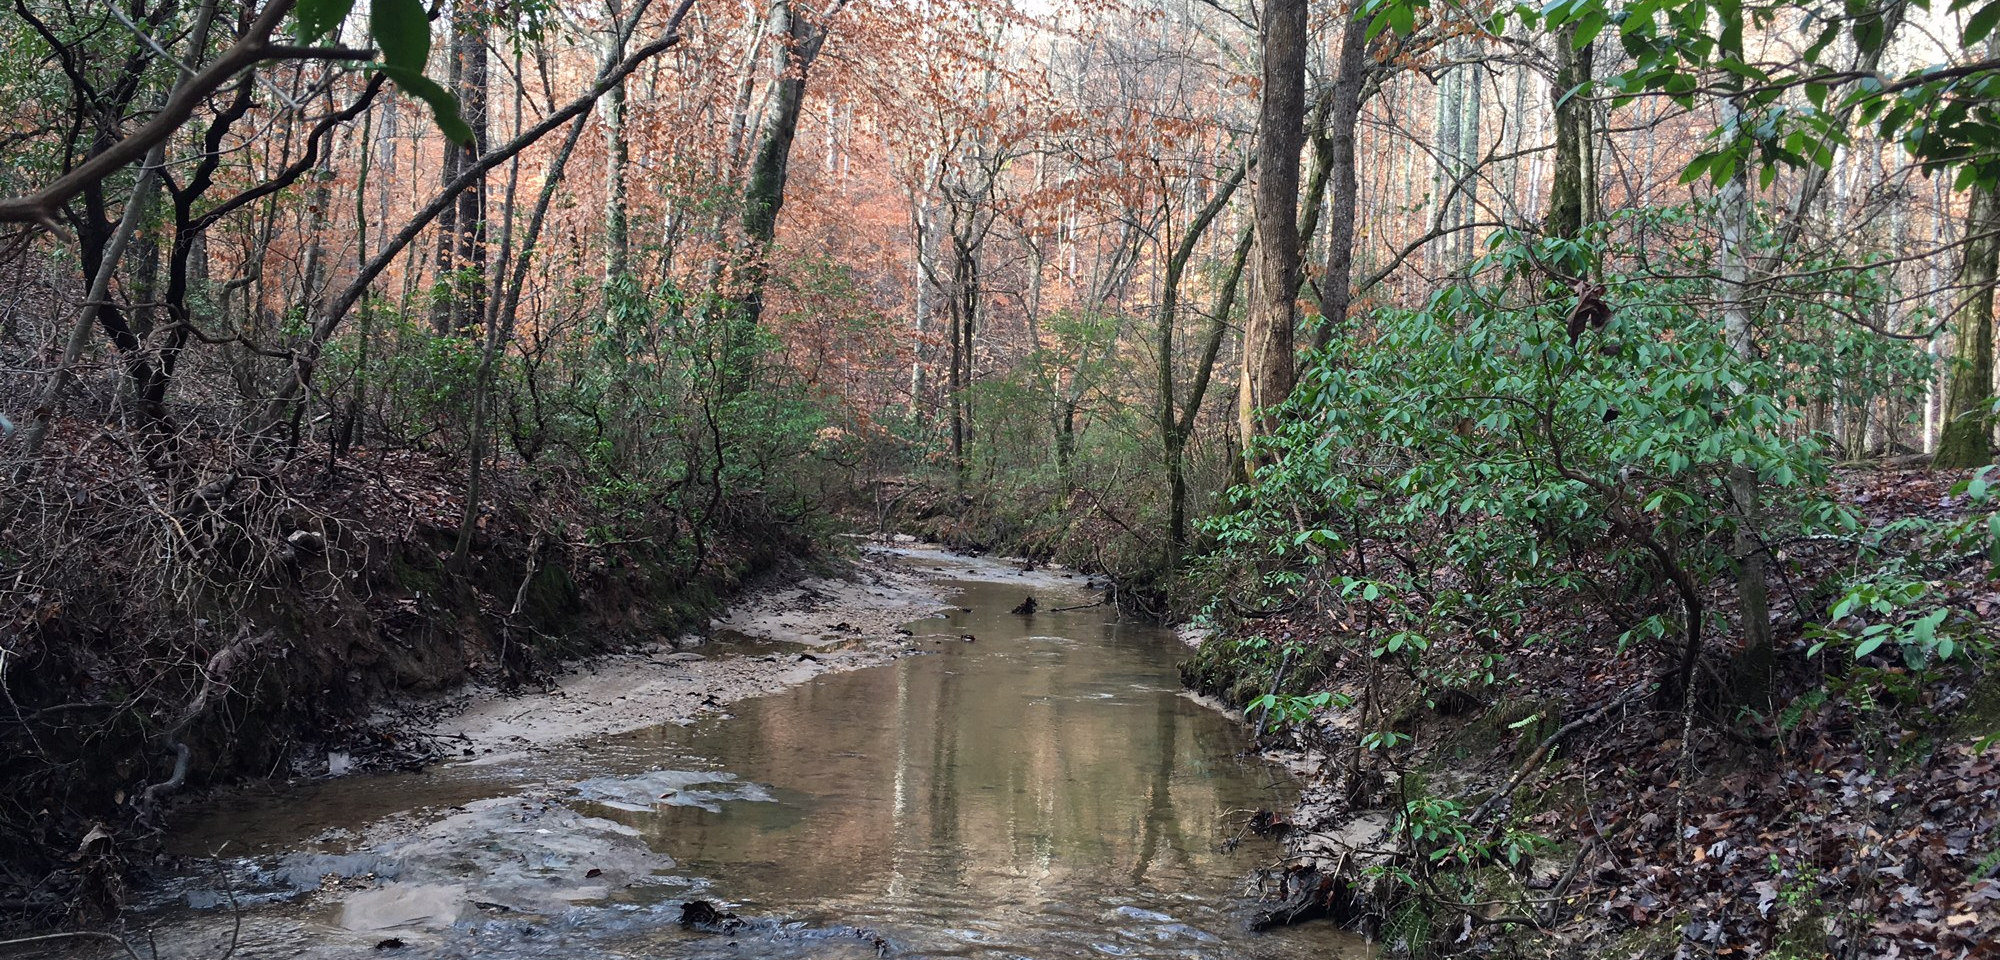 27 acre wooded property on the Northeast side of Gainesville GA. Located contiguous to the city limits of Gainesville. Over 750 feet road frontage and 1,500 feet on wide, fast flowing Floyd Creek which feeds into the North Oconee River. Property includes some drivable forest roads and an approximately 2 spring fed pond. Lots of wild life and good deer hunting. There are 2 old homes, a mobile home, and old bomb shelter on property - all in disrepair with no value. Located 2 miles to I-985 and 4 miles to downtown Gainesville.